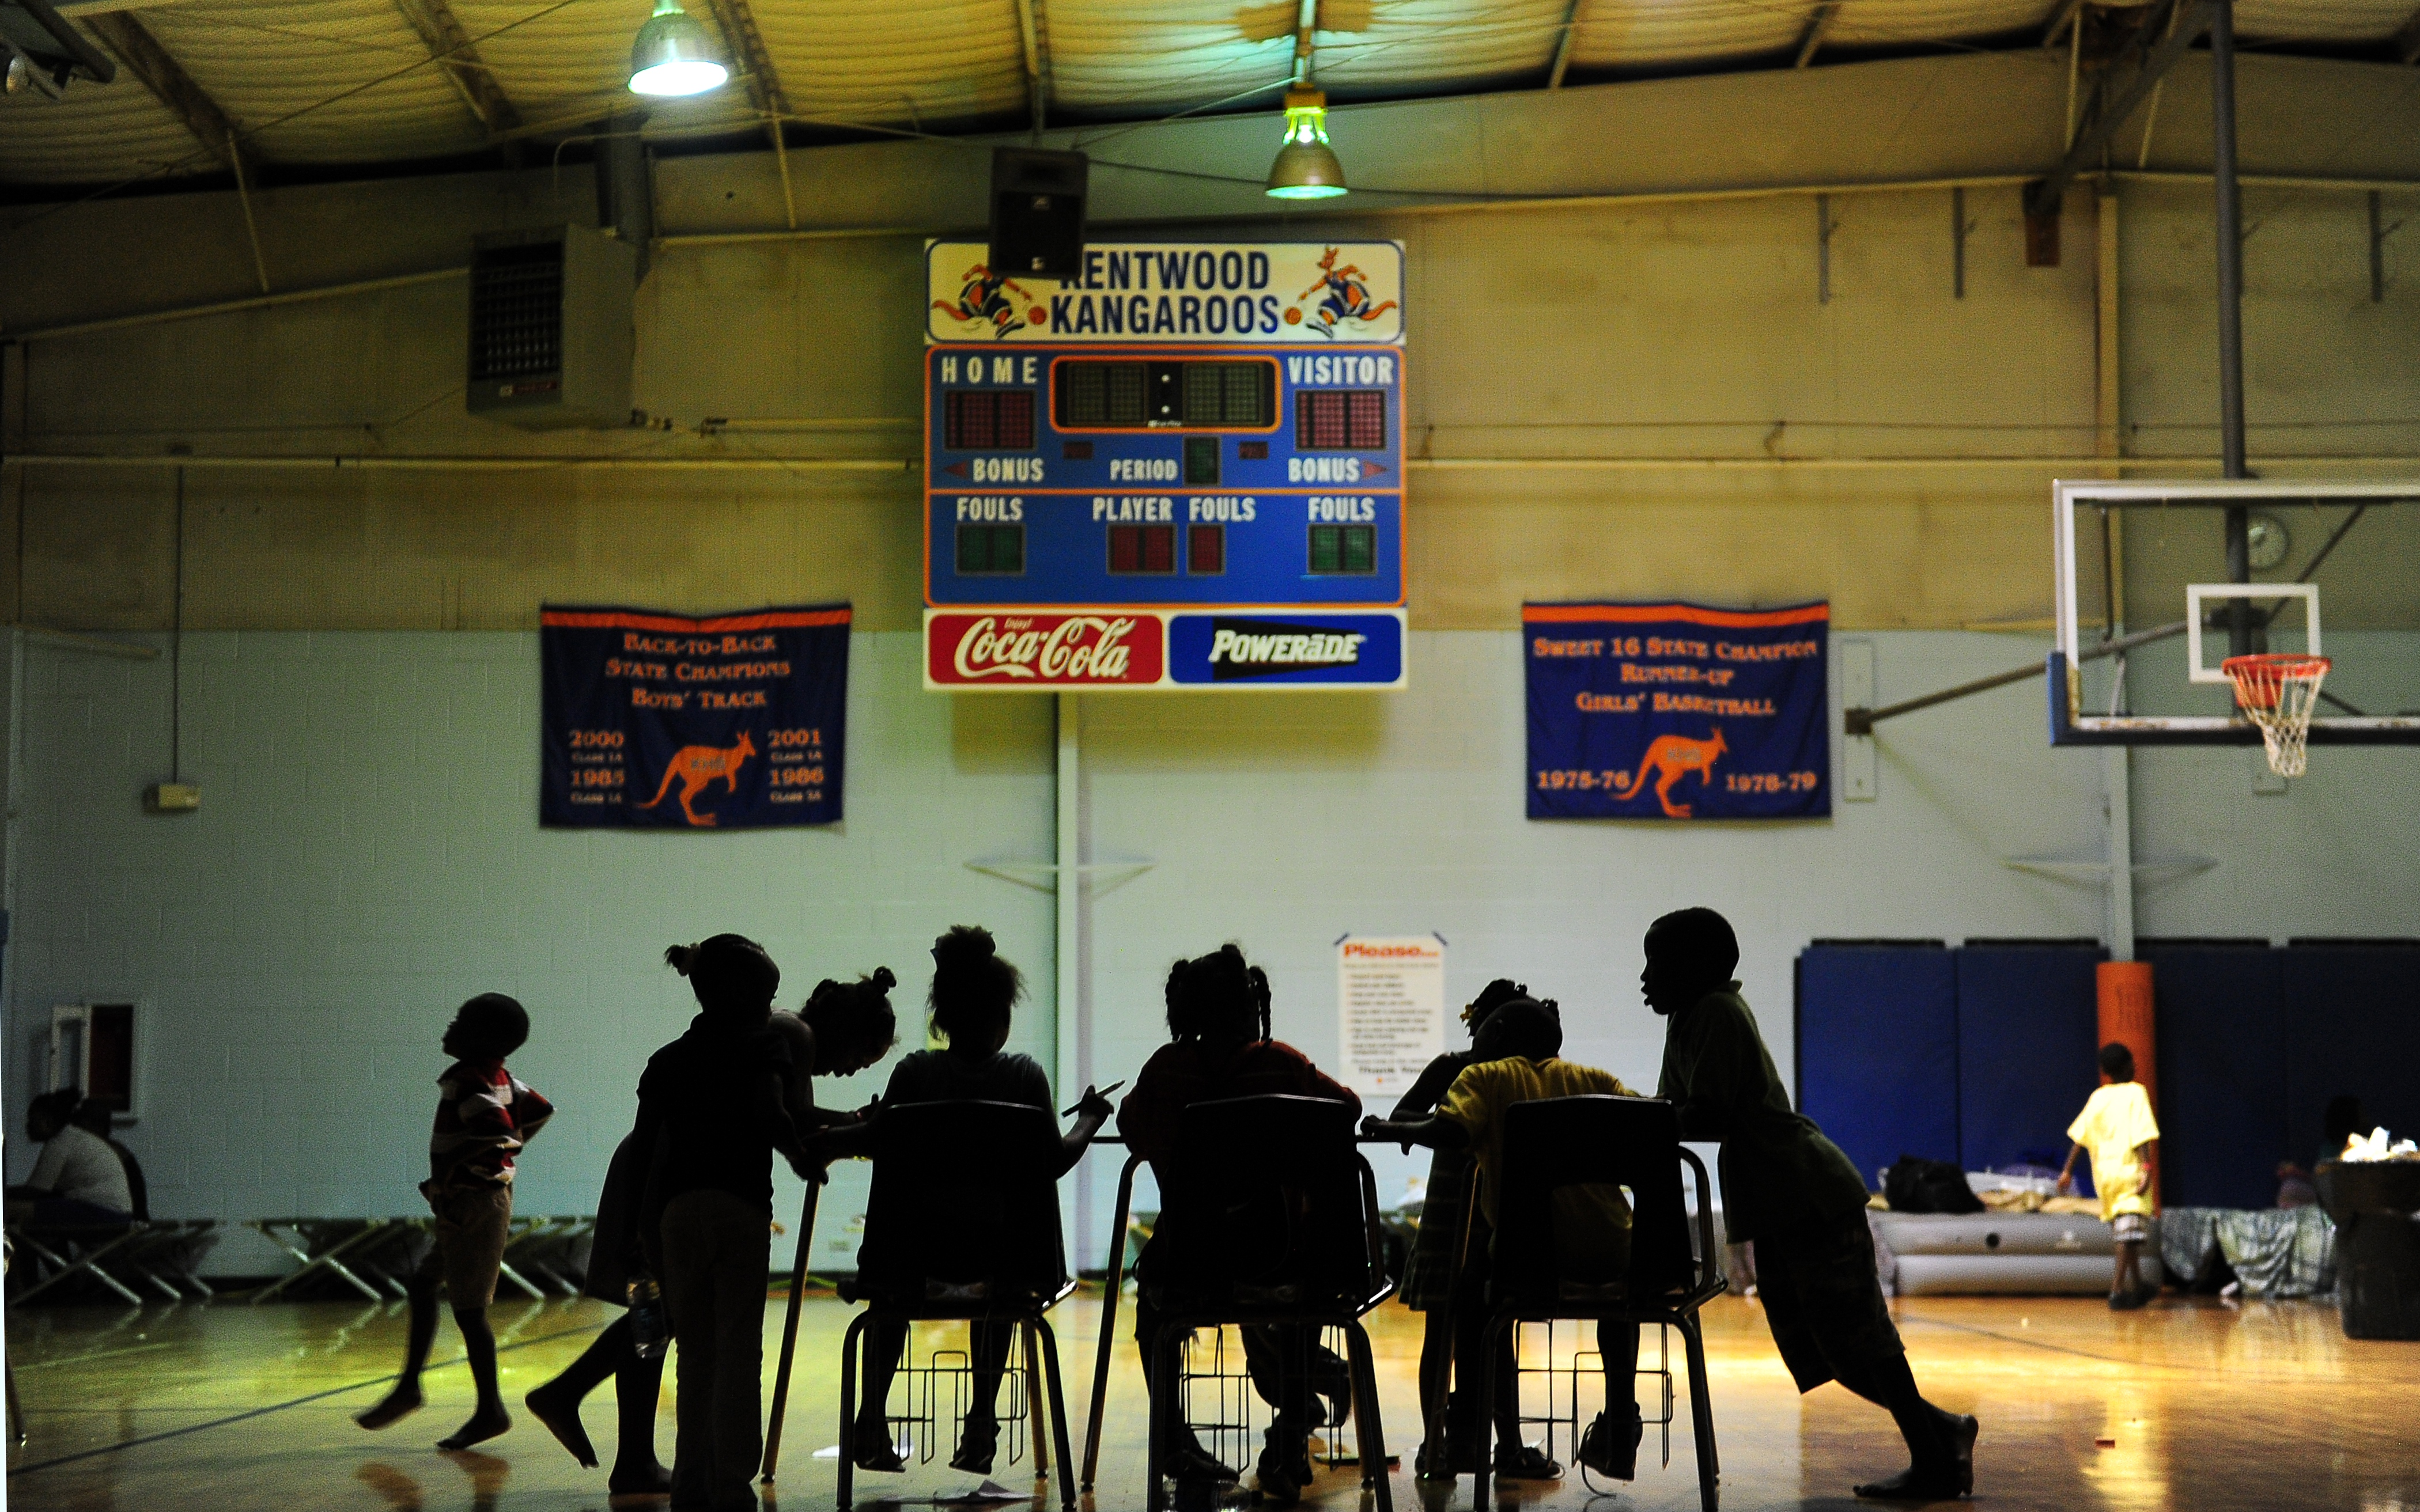 Children try to do their homework at an evacuation shelter in a high school gymnasium in Kentwood, Louisiana on August 30, 2012.